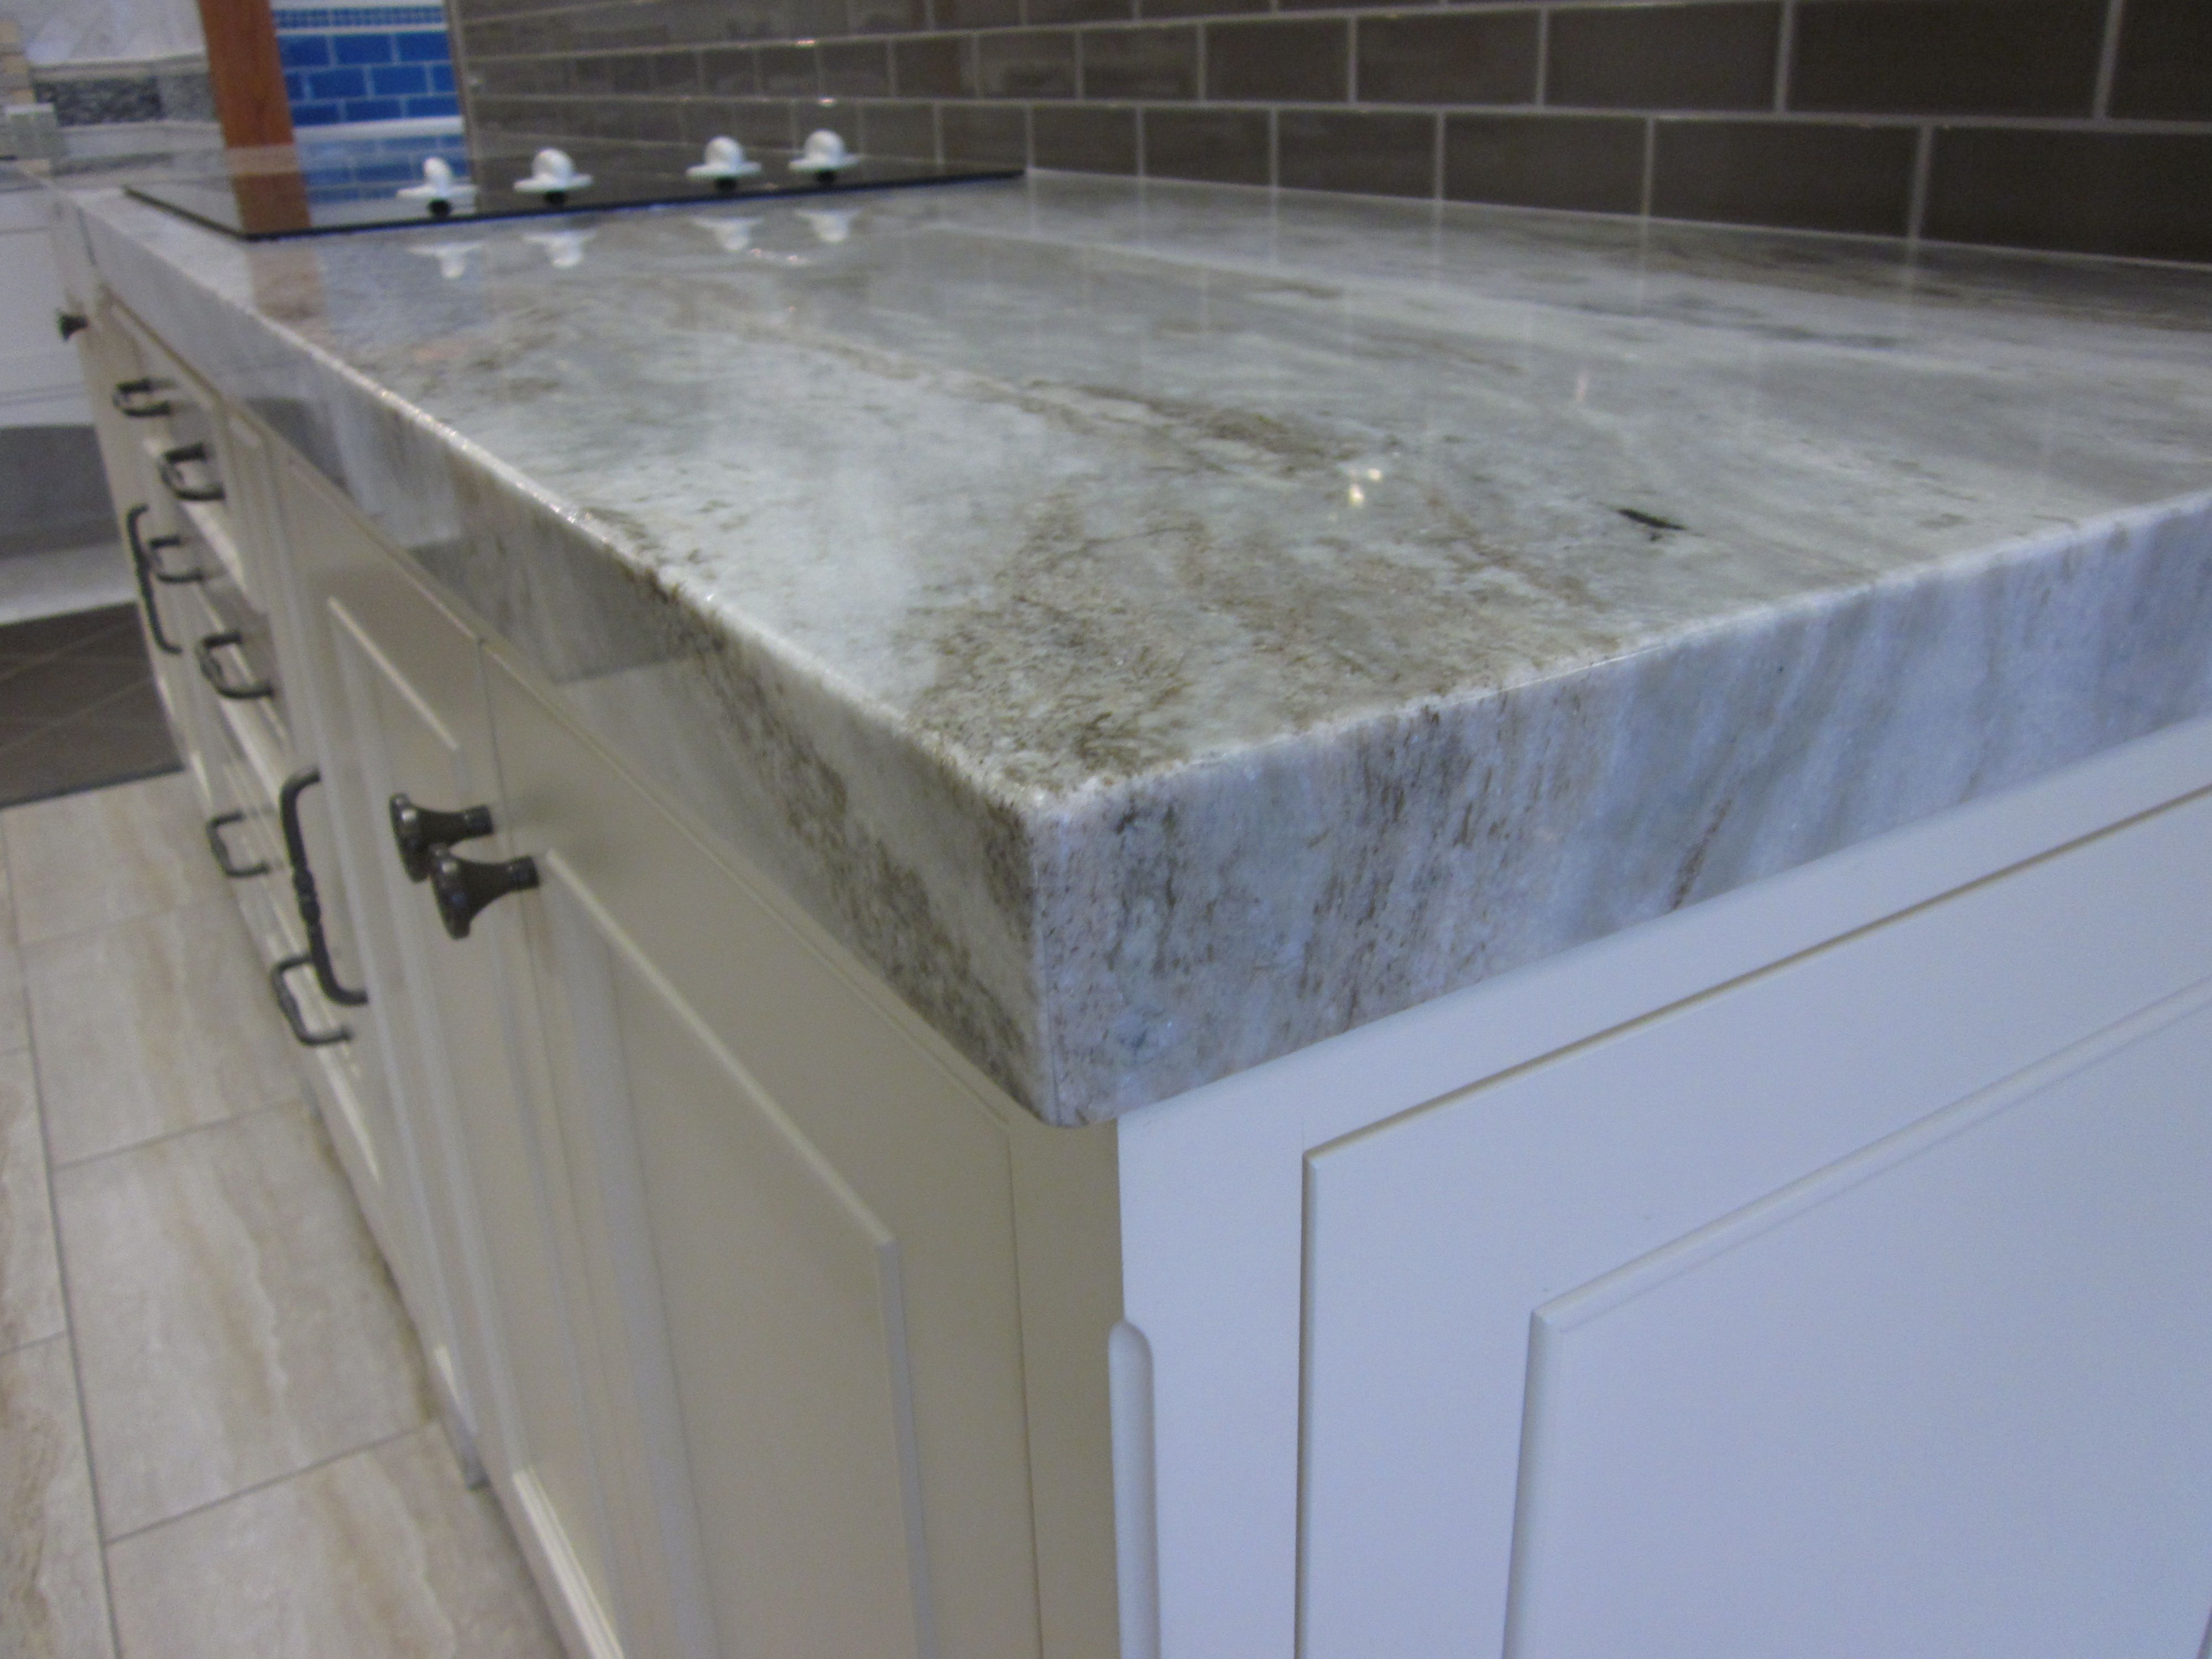 How To Shine Countertops Fresh Looks Countertop Edges Best To You Thick Countertop